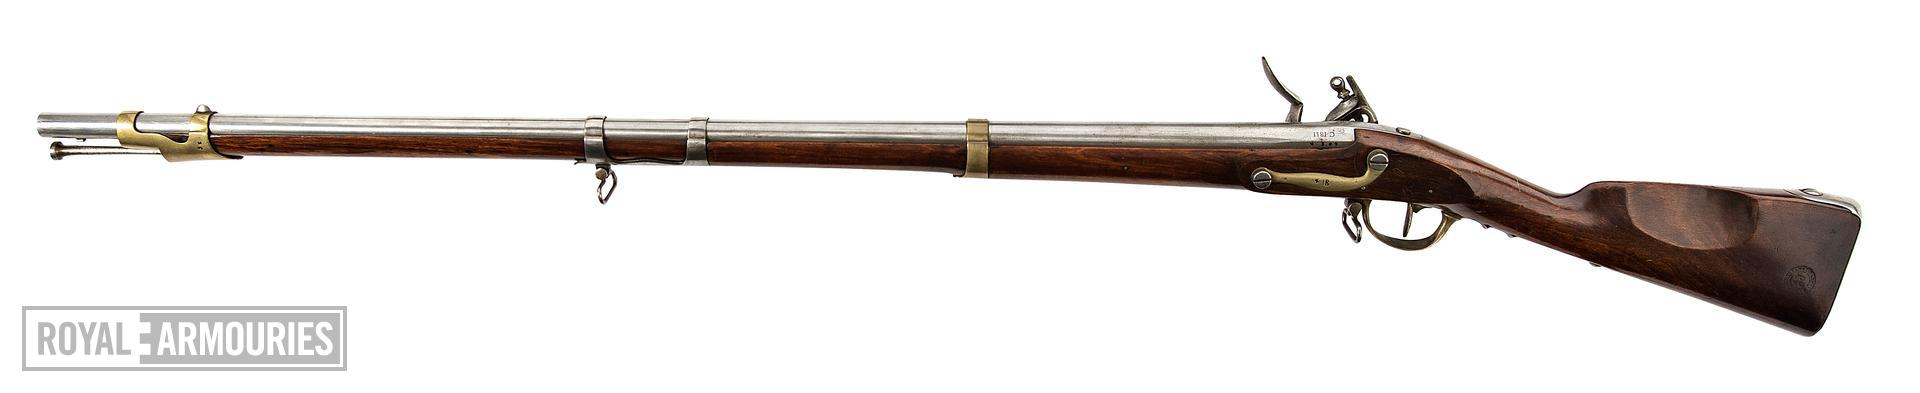 Model Year IX Flintlock military carbine for Dragoons, about 1811, France (XII.2658)